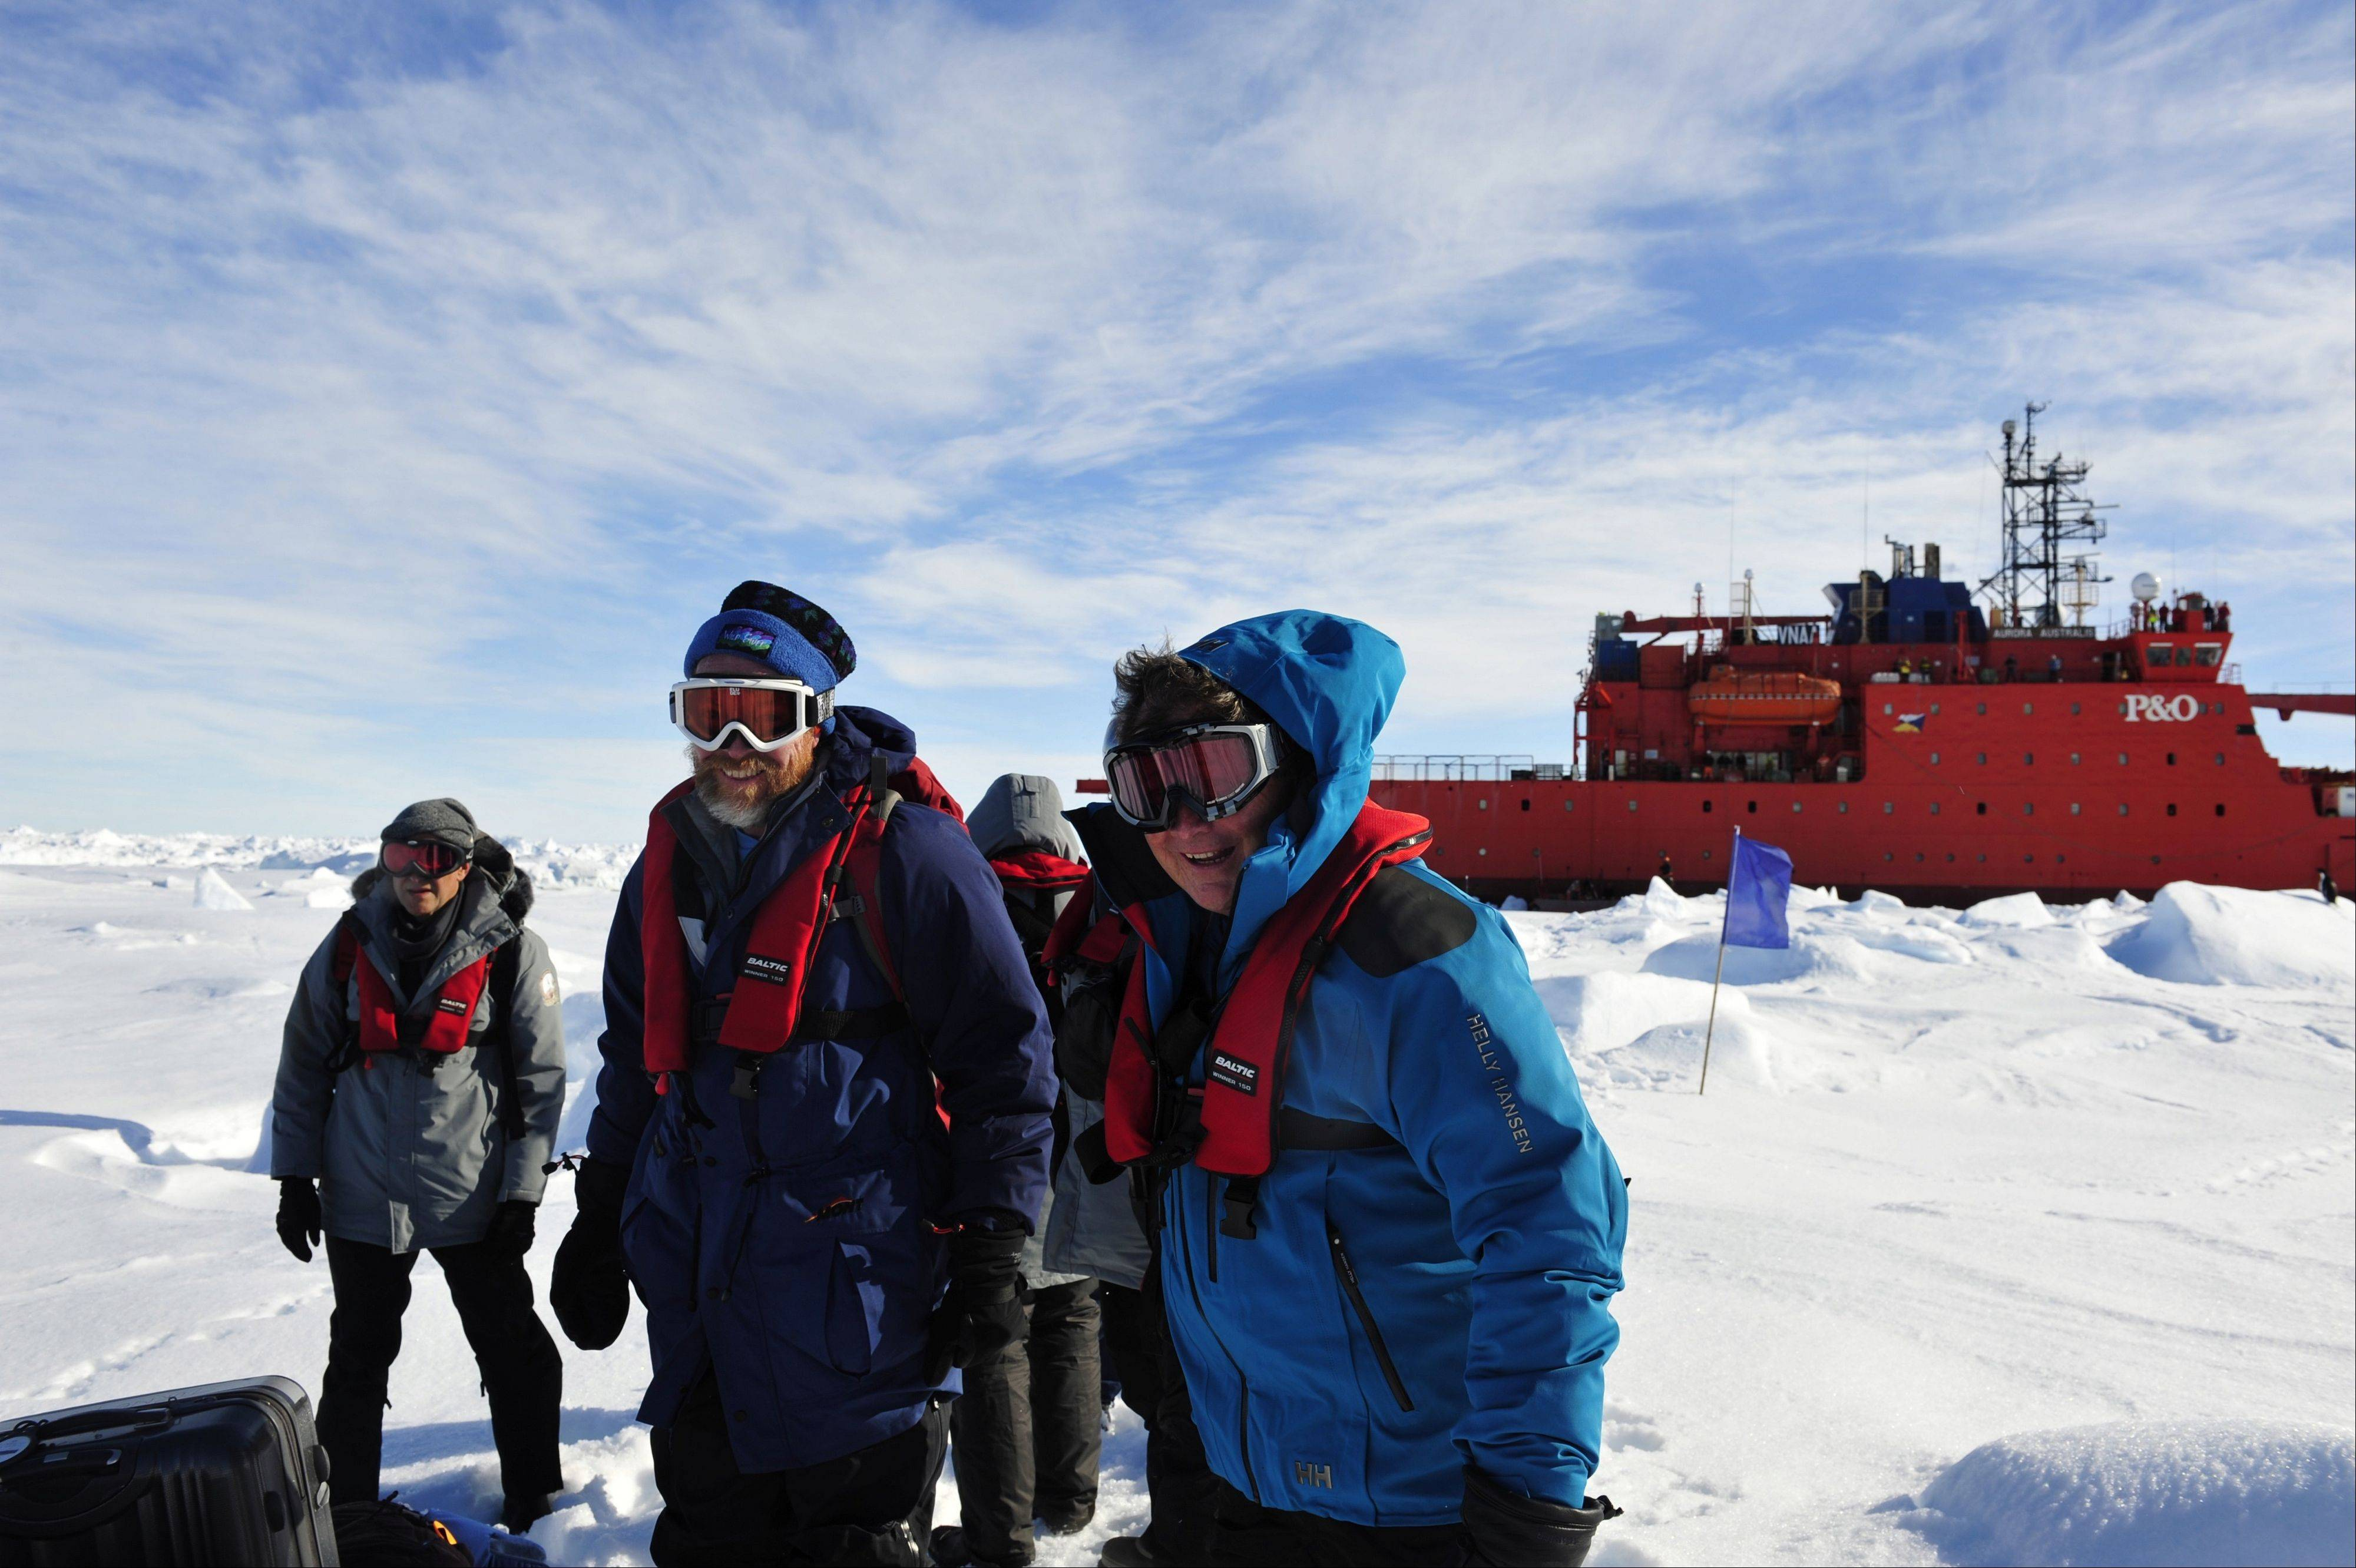 The first group of passengers aboard the trapped Russian ship MV Akademik Shokalski arrive at a safe surface Thursday off the Antarctic.